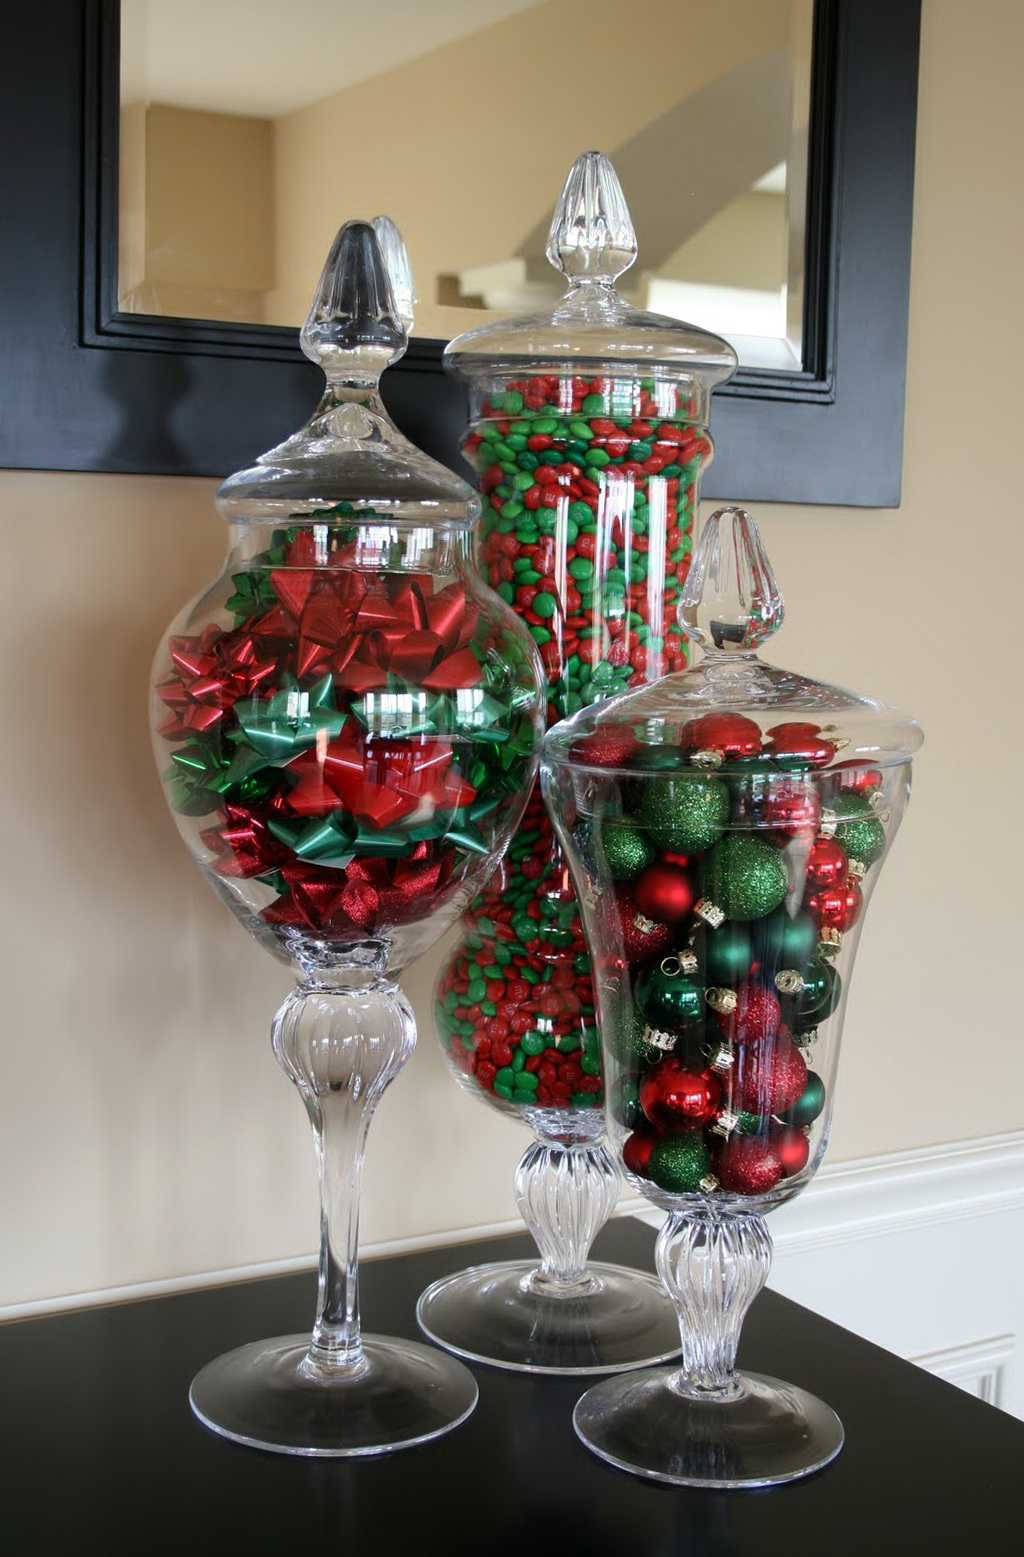 Vase filler ideas for christmas home design ideas vase filler ideas for christmas reviewsmspy